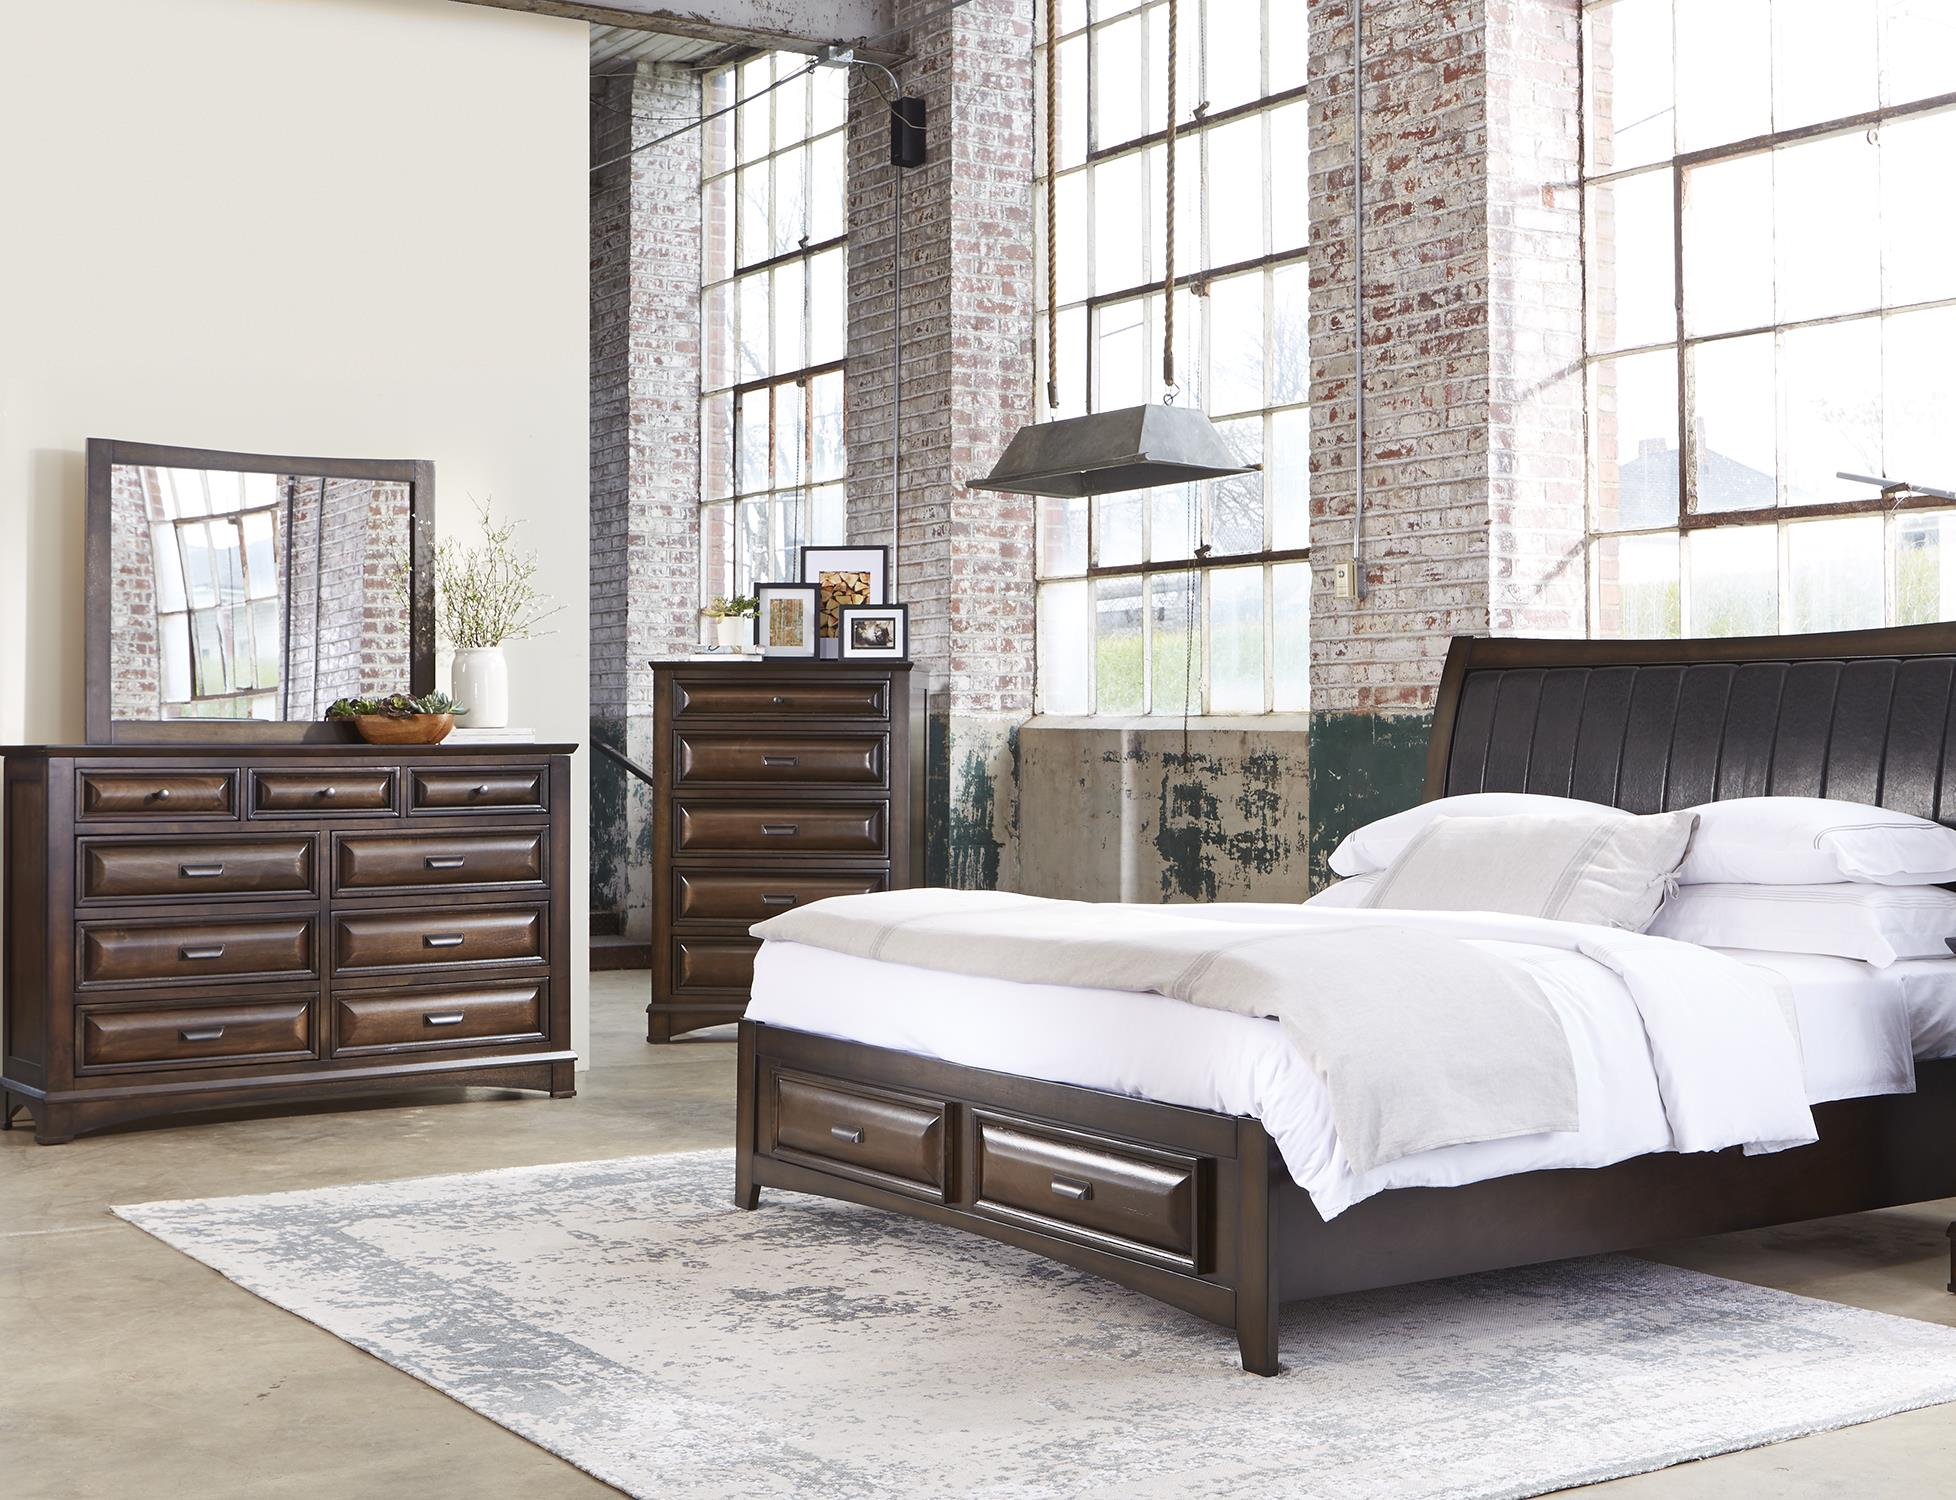 Liberty Furniture Knollwood Queen Bedroom Group - Item Number: 258 Q Bedroom Group 2